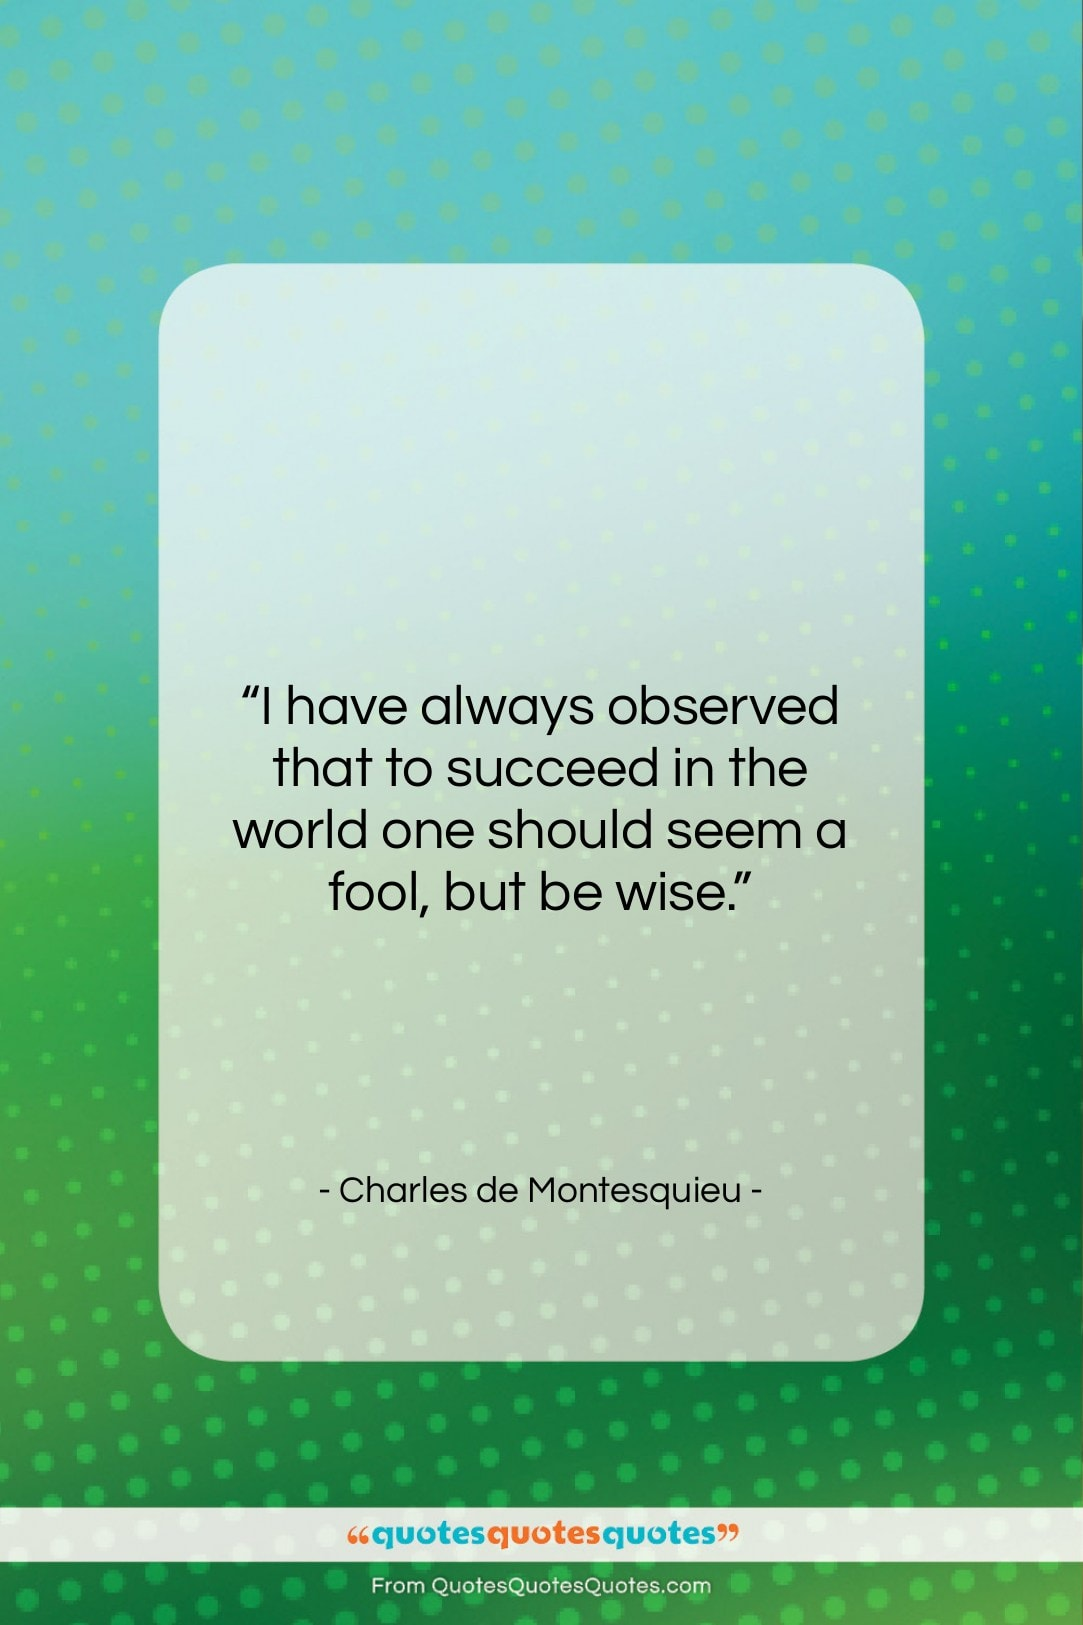 """Charles de Montesquieu quote: """"I have always observed that to succeed…""""- at QuotesQuotesQuotes.com"""